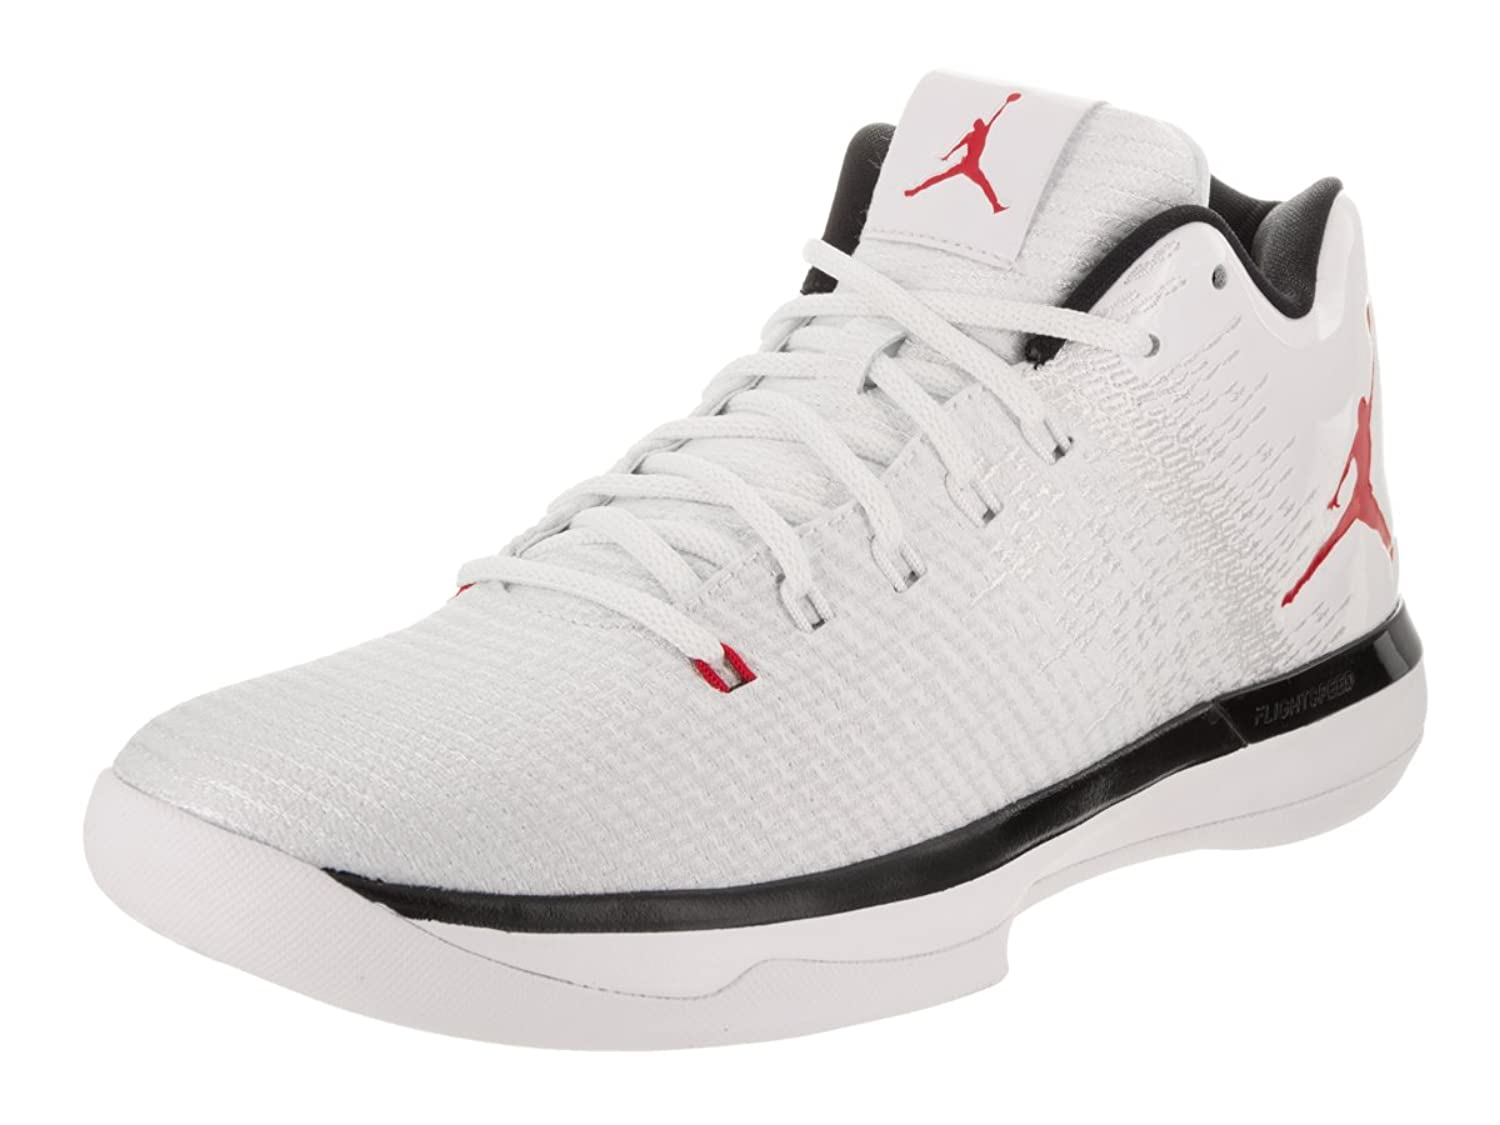 b2f668da145f Jordan Nike Mens Air XXXI Low White University Red Black Basketball Shoe 11  Men